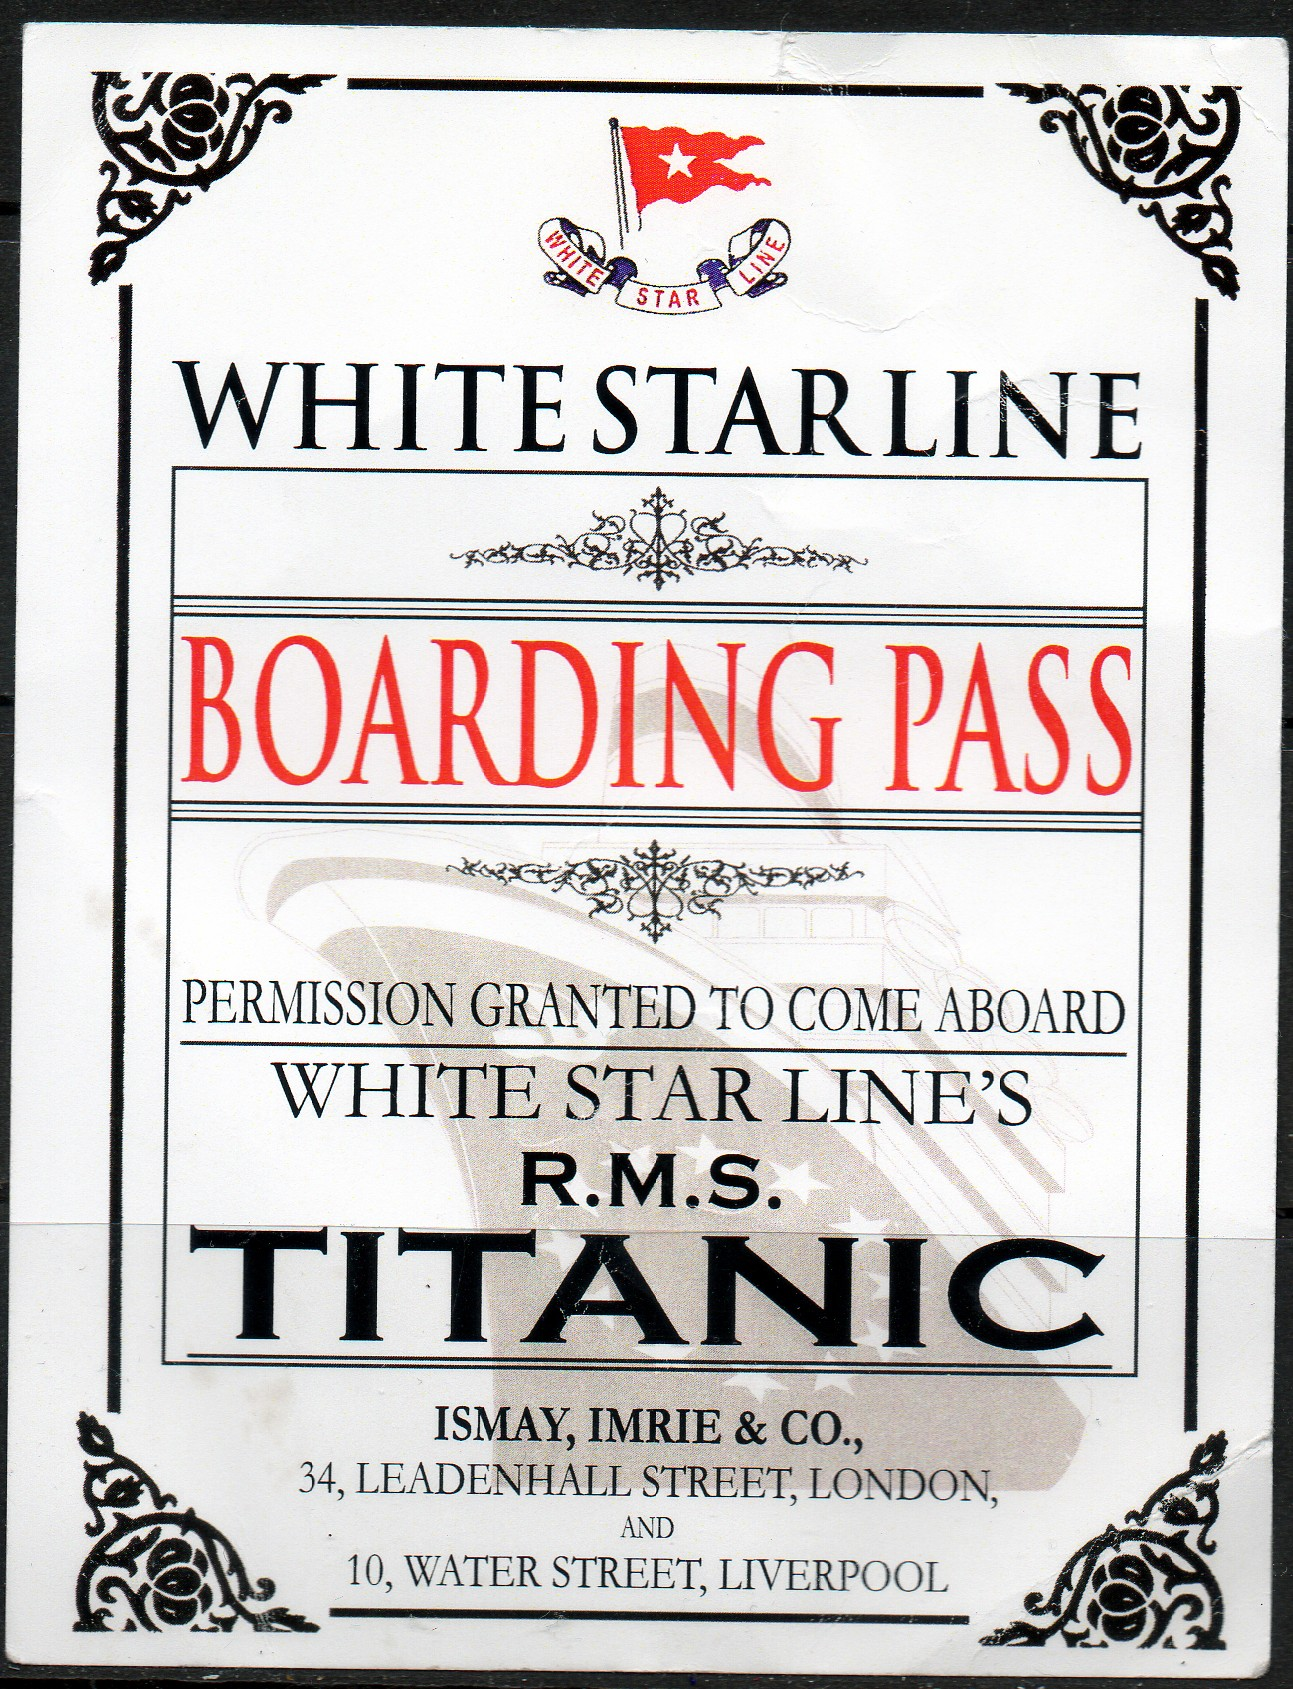 Titanic boarding pass printable pictures to pin on pinterest somewhere pronofoot35fo Images